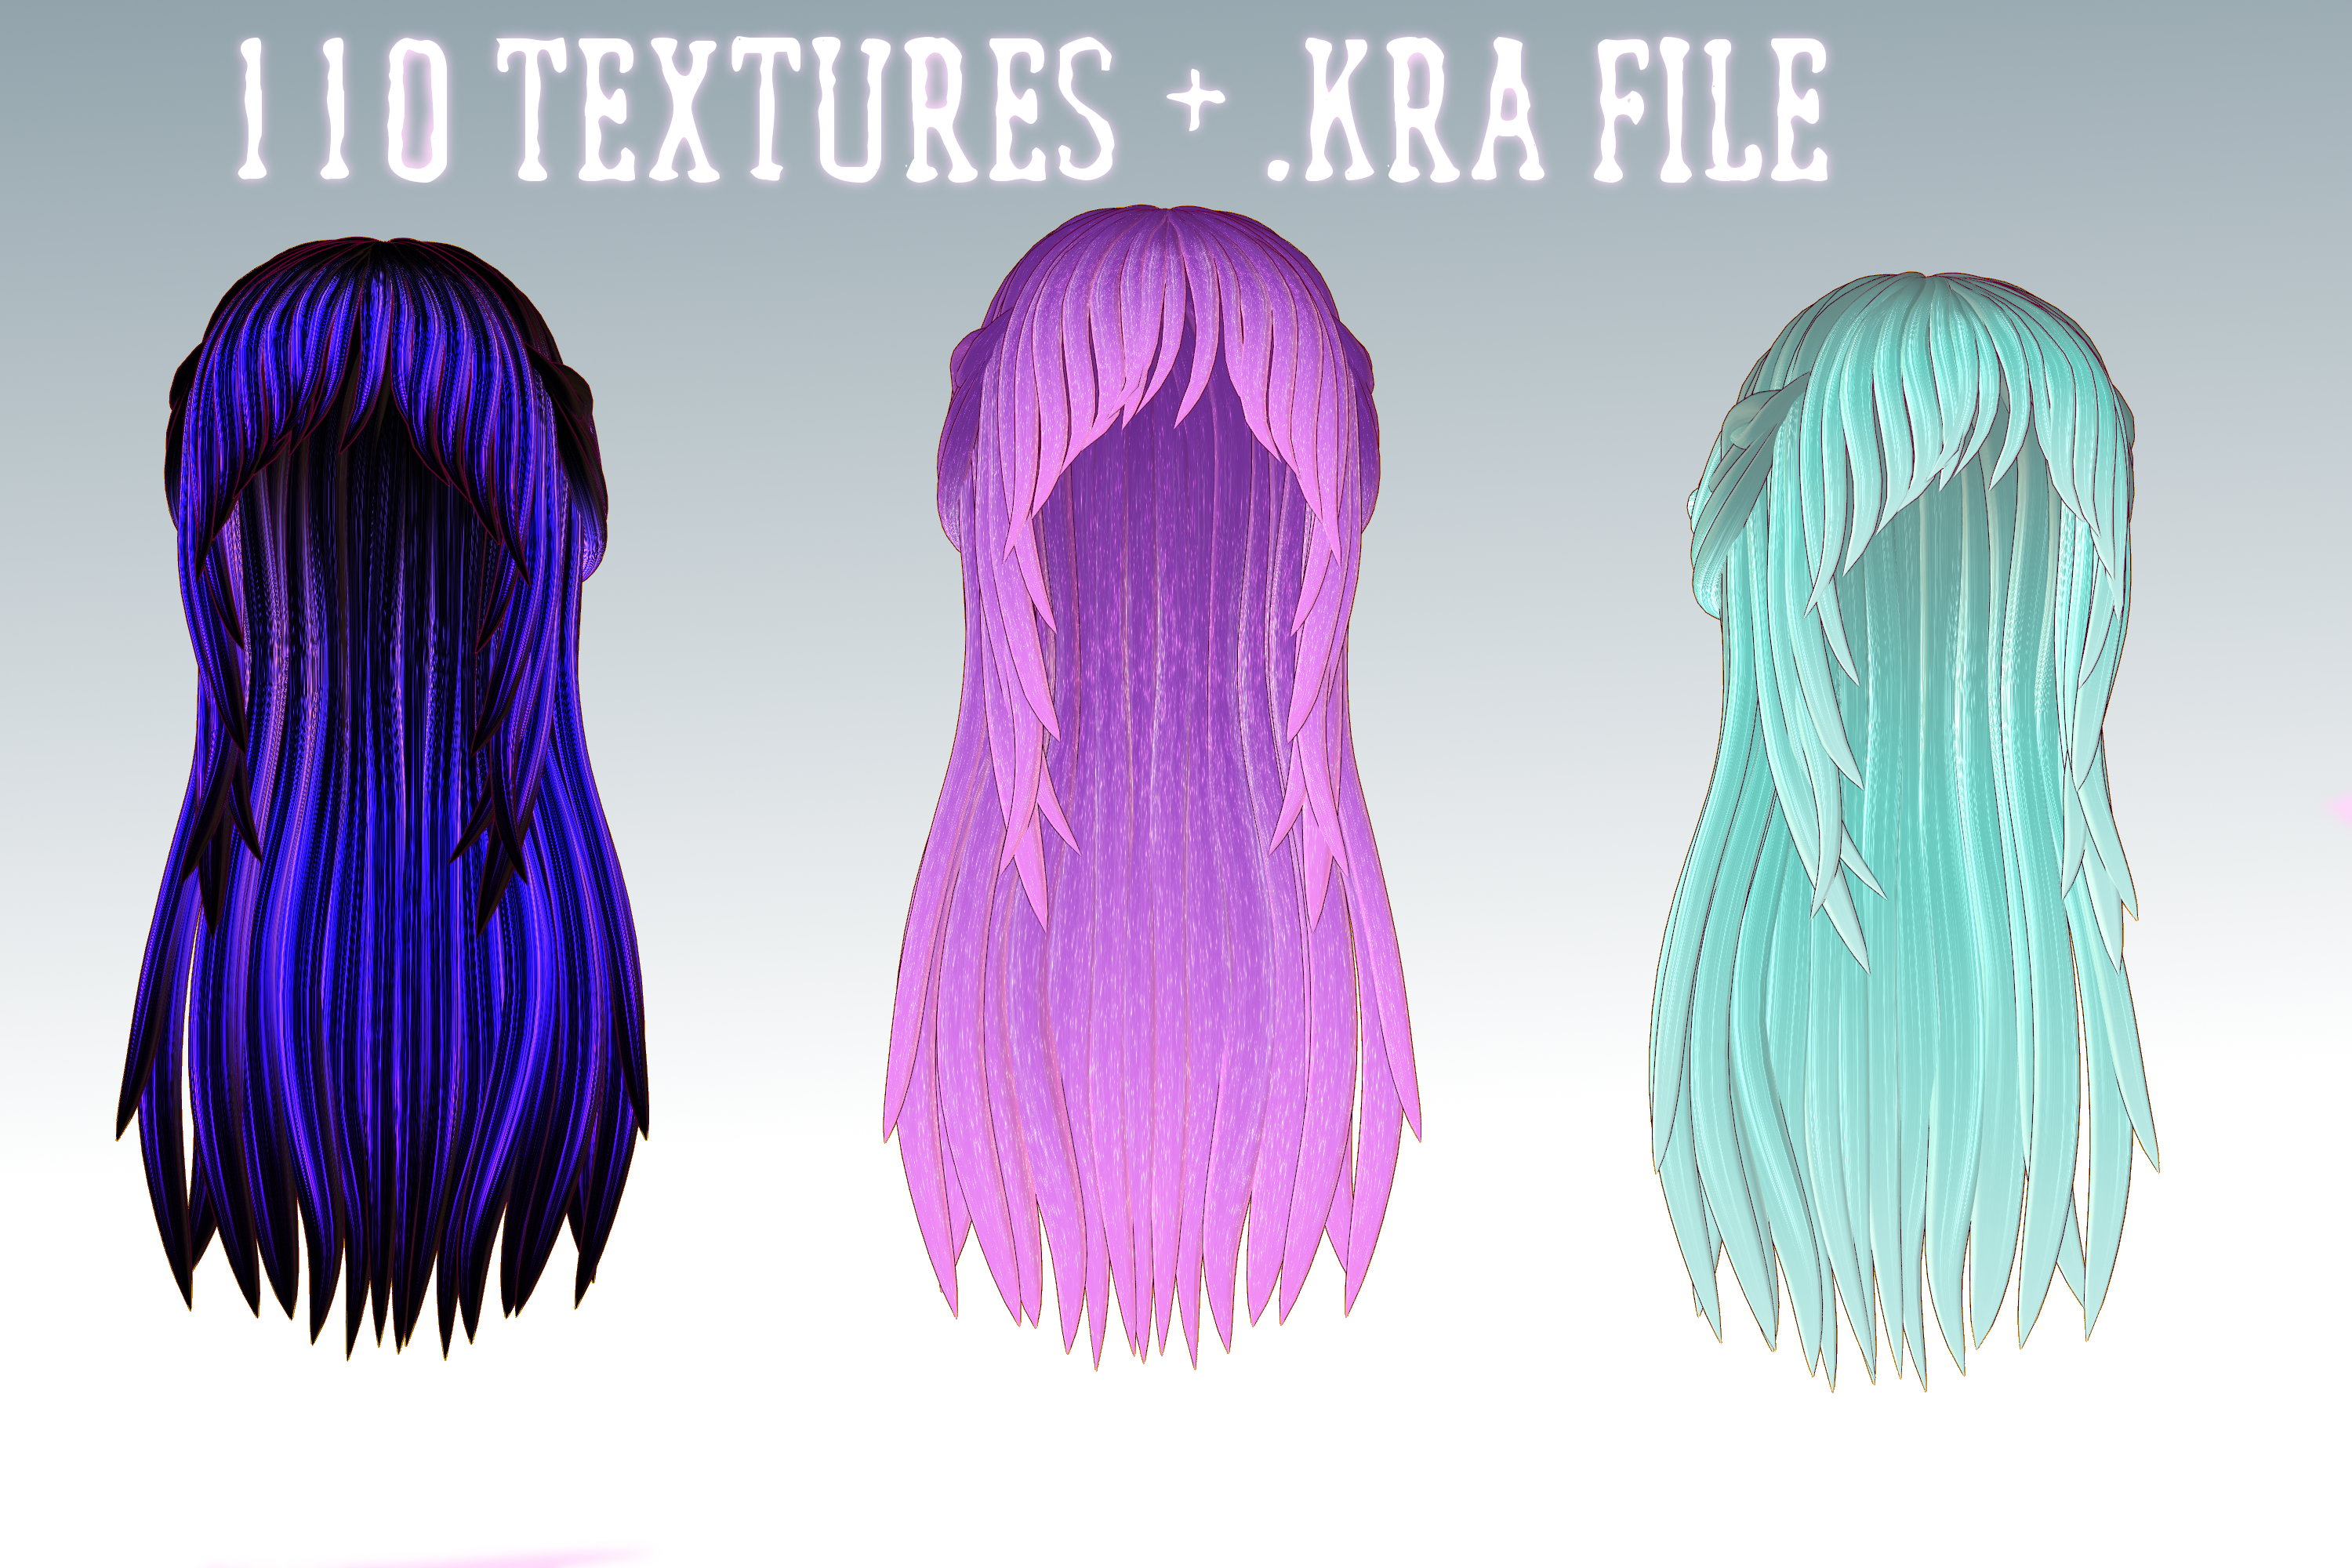 Mmd Huge Hair Texture Pack 2 By Relomi On Deviantart